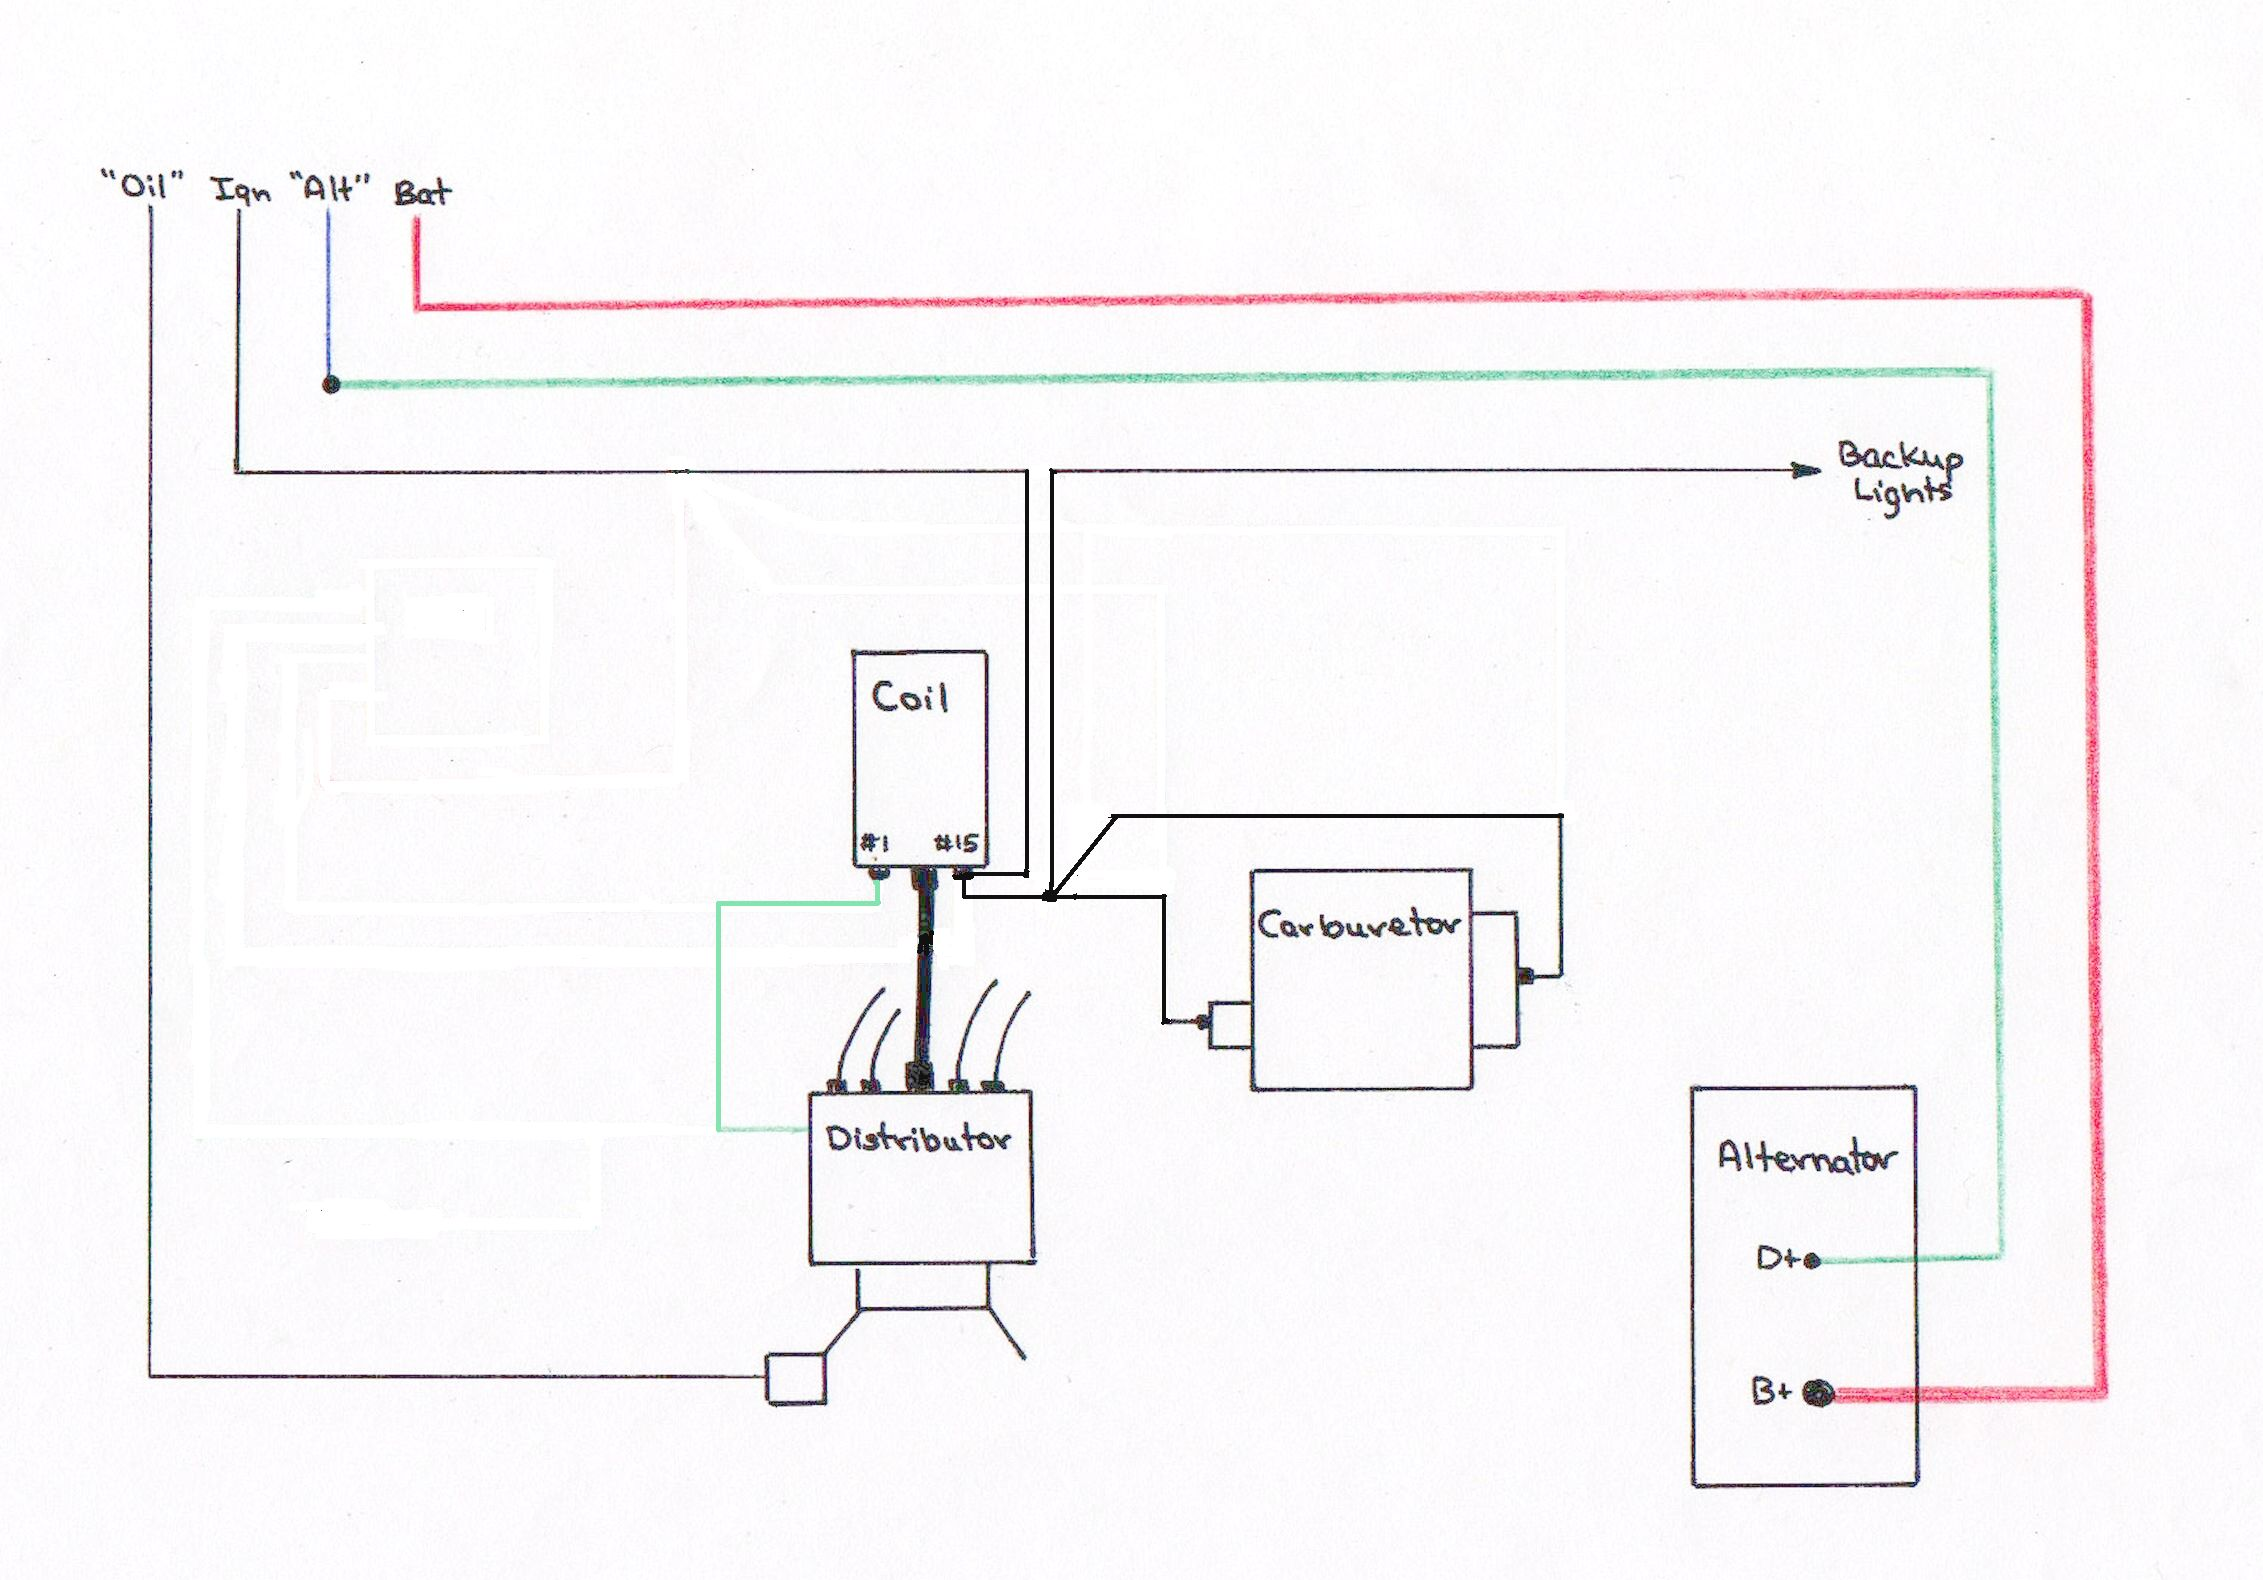 handdrawn_schematic alternator wiring vw engine wiring diagram at gsmx.co